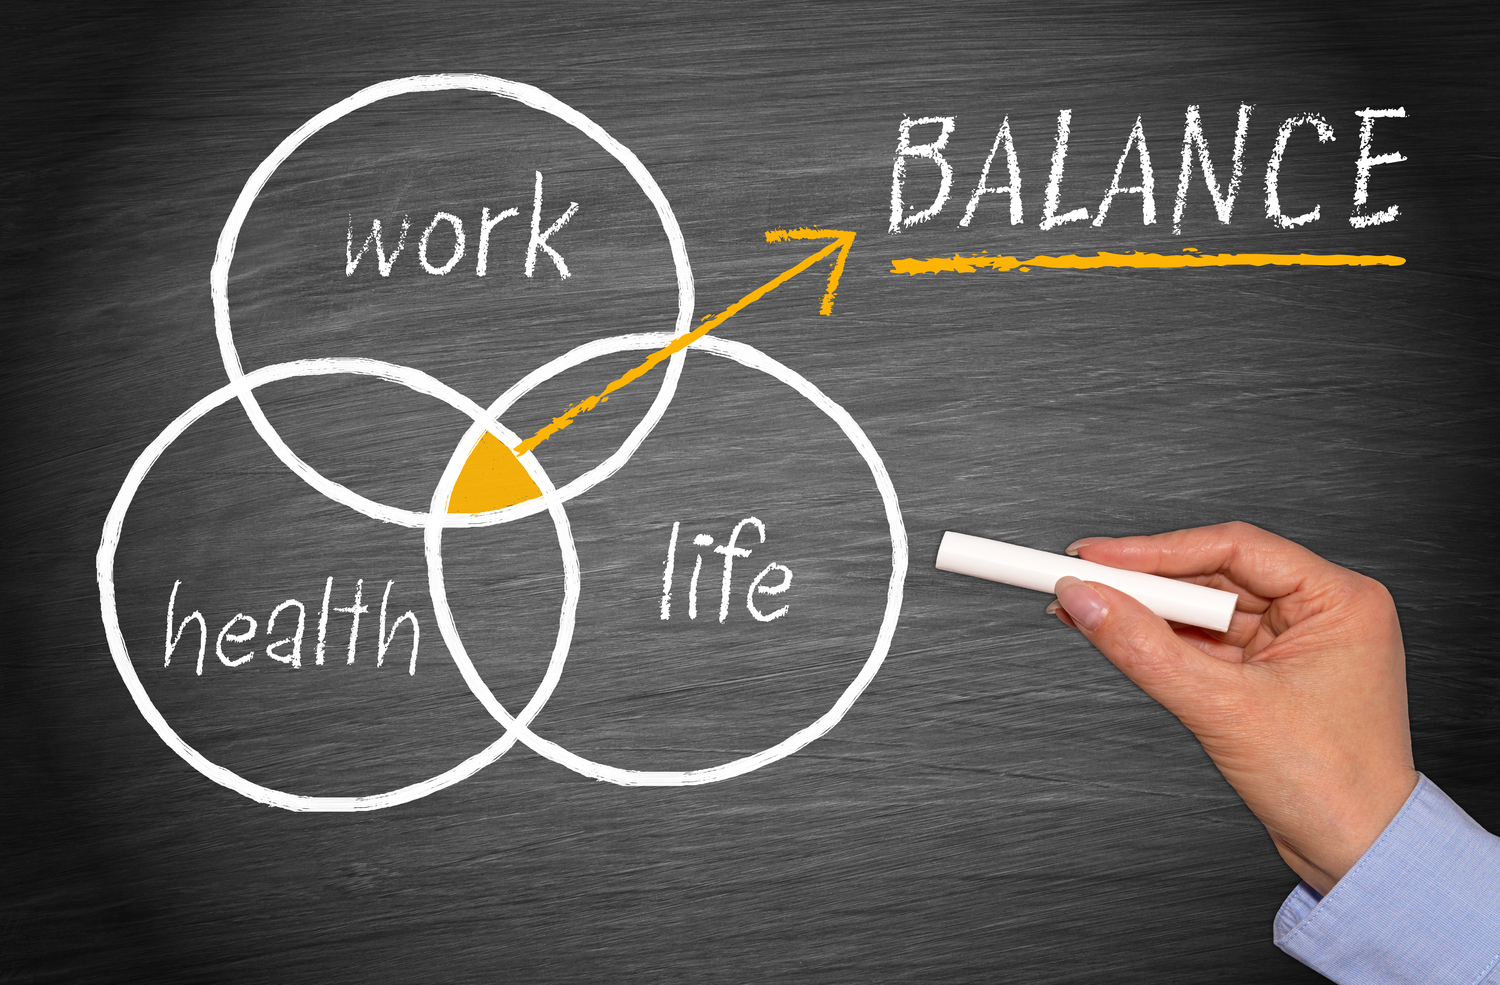 work life balance programs better the employer employee relationship